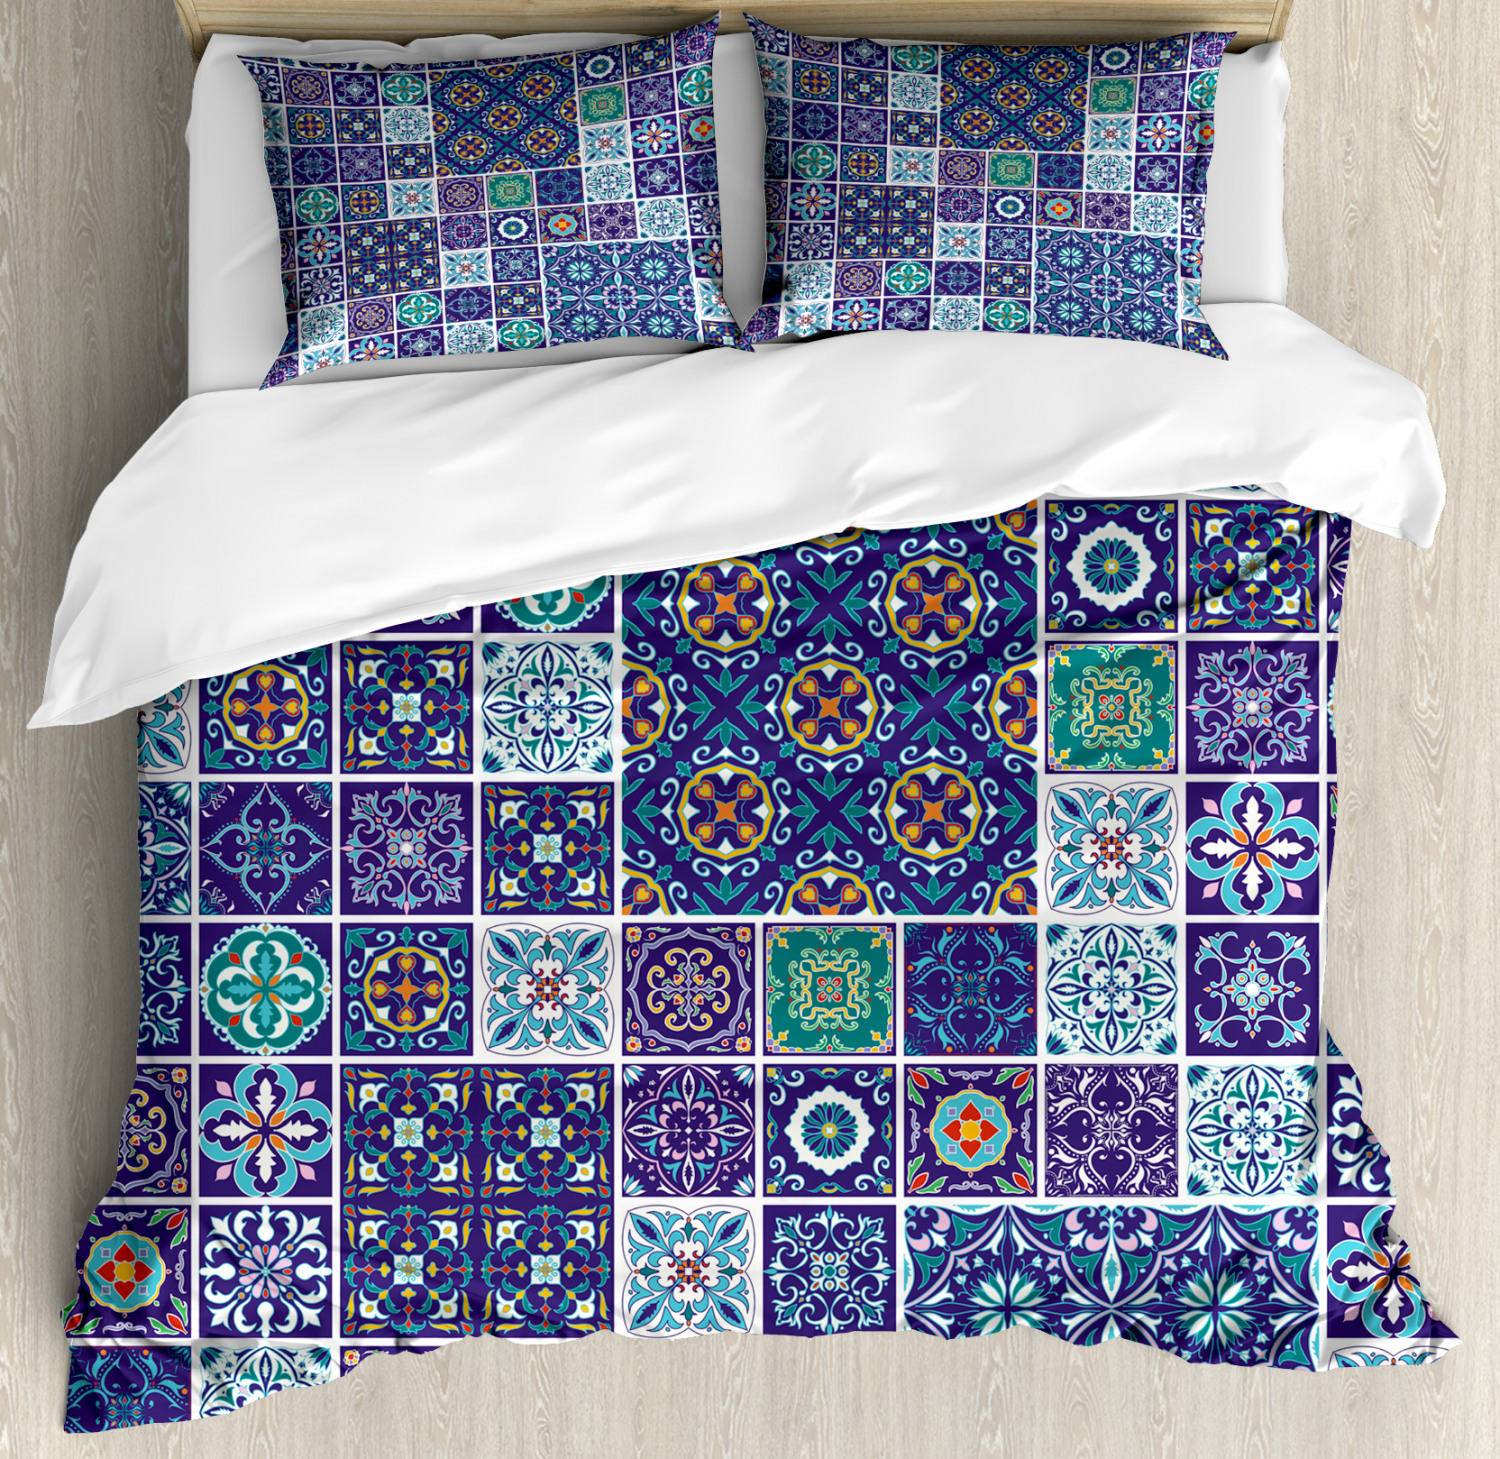 Ethnic Duvet Cover Set with Pillow Shams Traditional Mosaic Tile Print